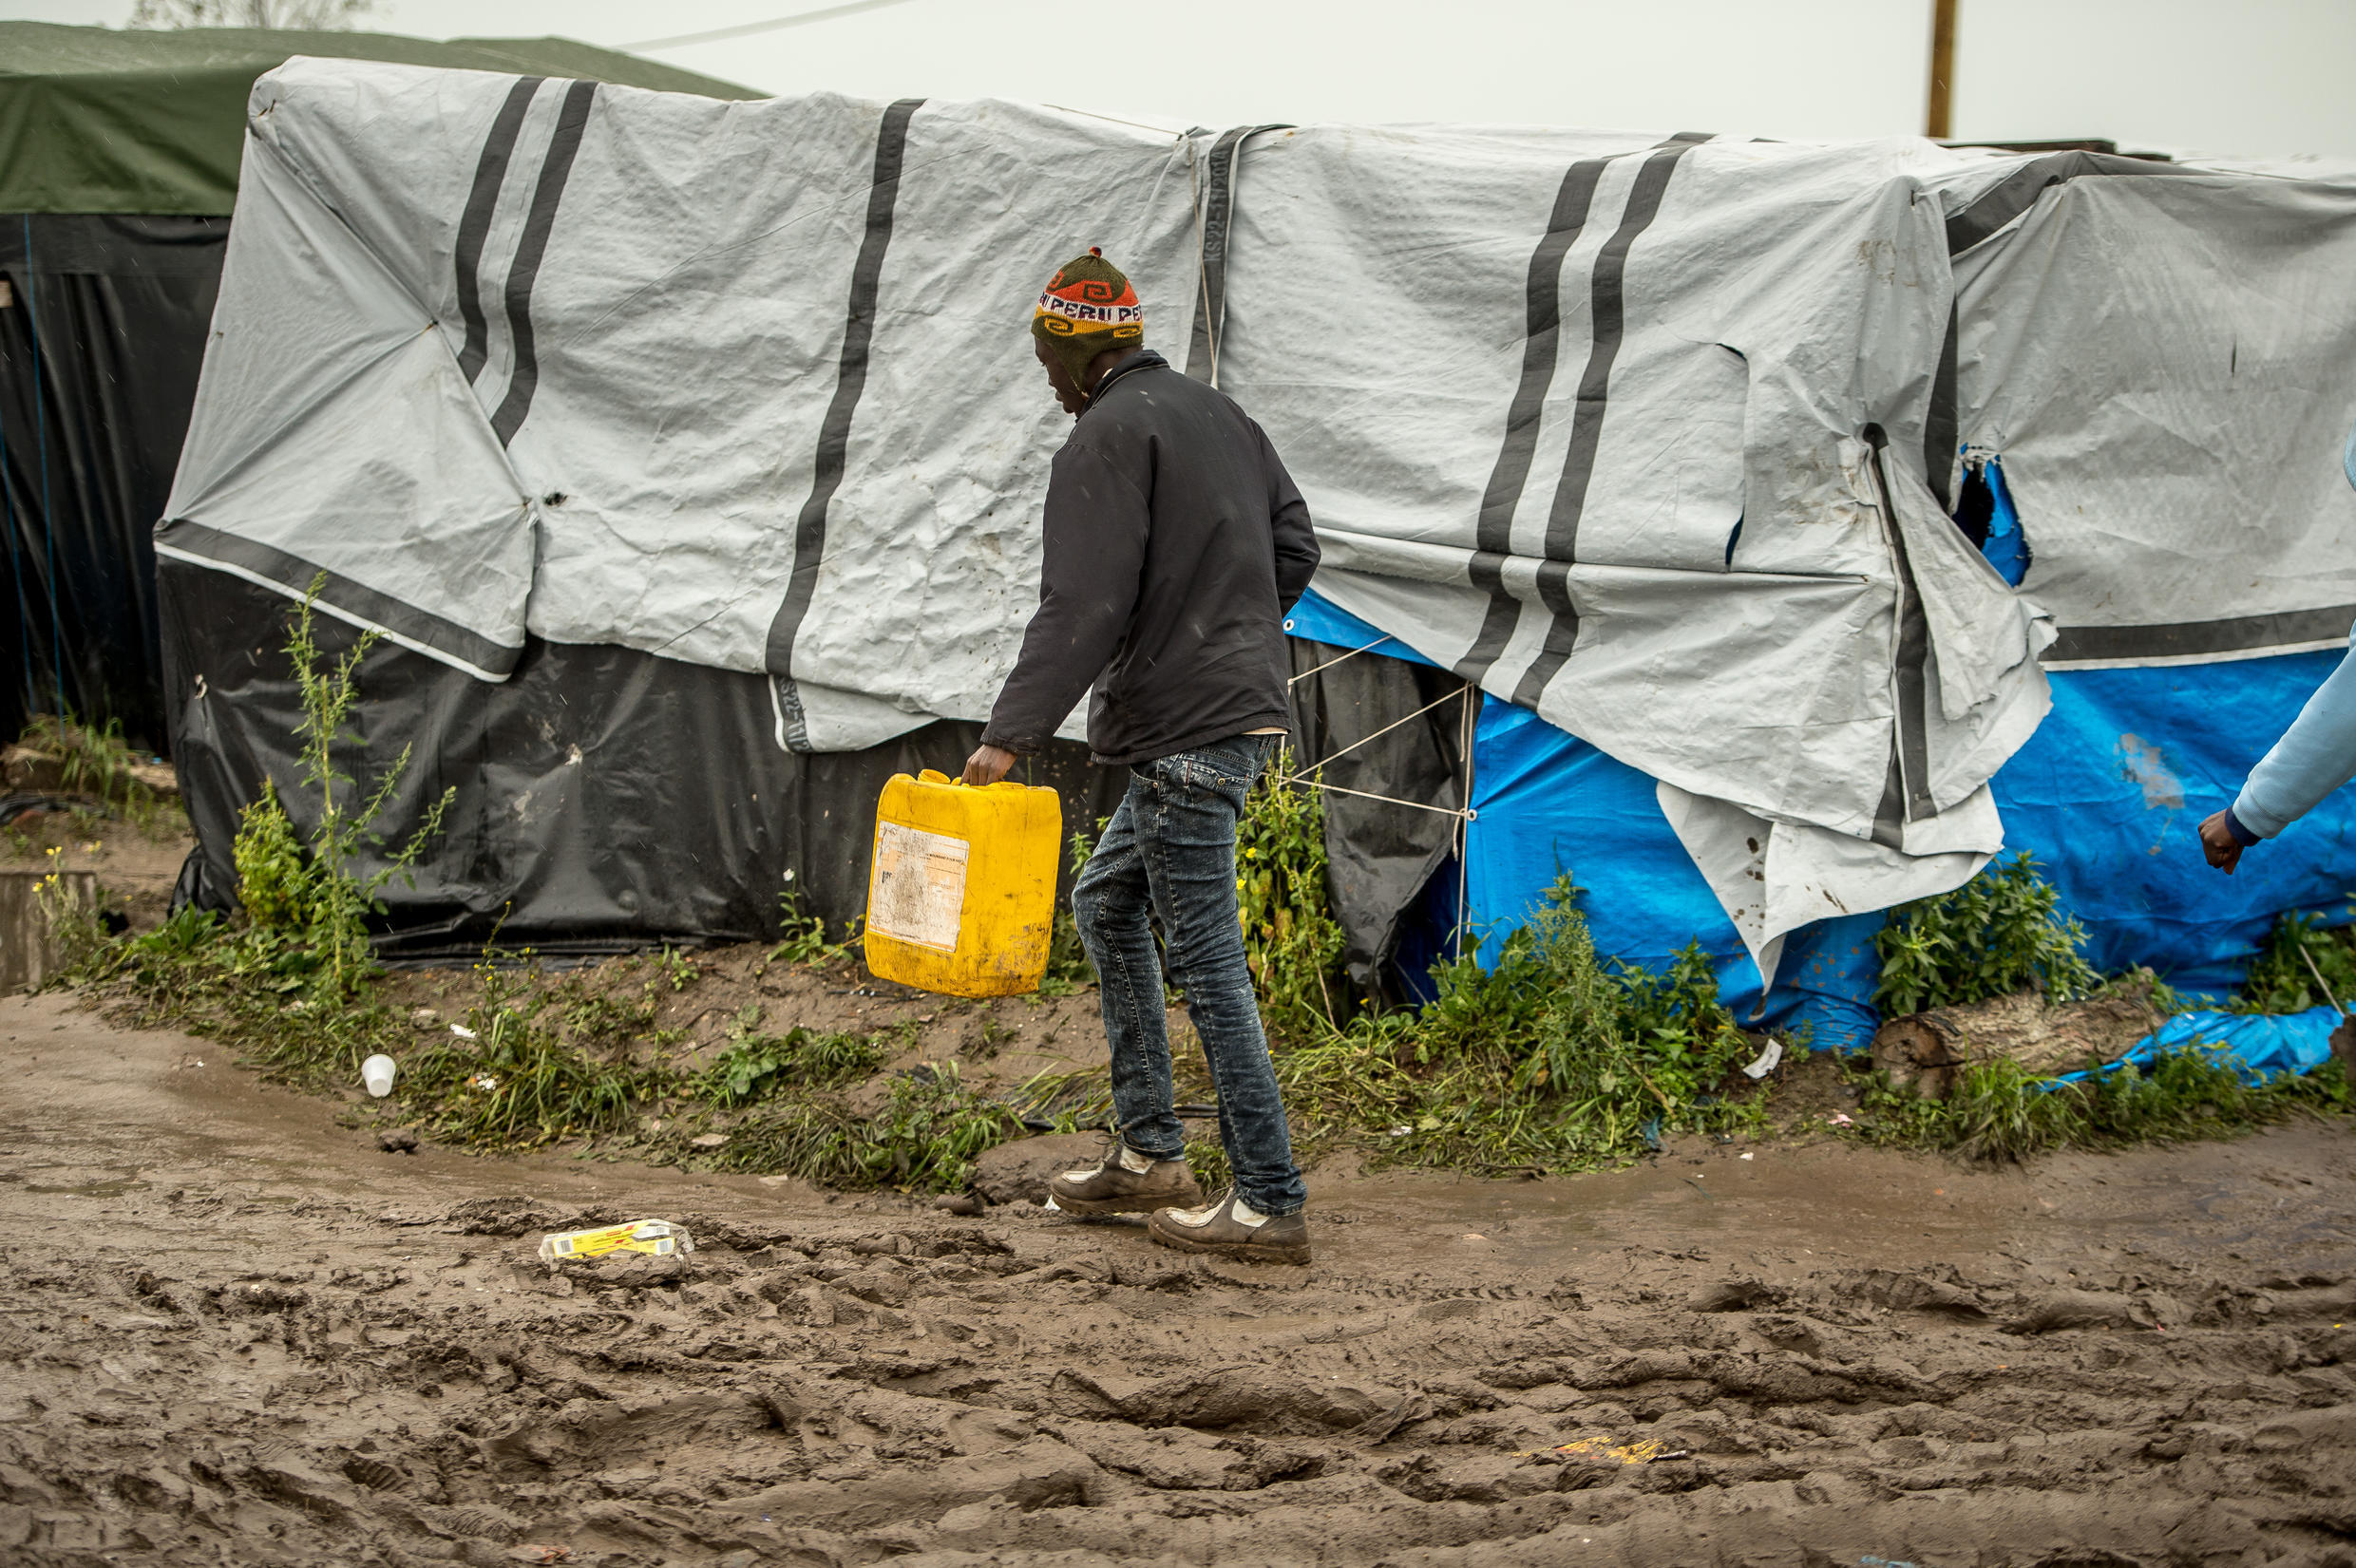 21 October 2015 - A man walks through the 'New Jungle' migrants camp in Calais, where thousands of people live, in the hope of crossing the Channel to Britain.